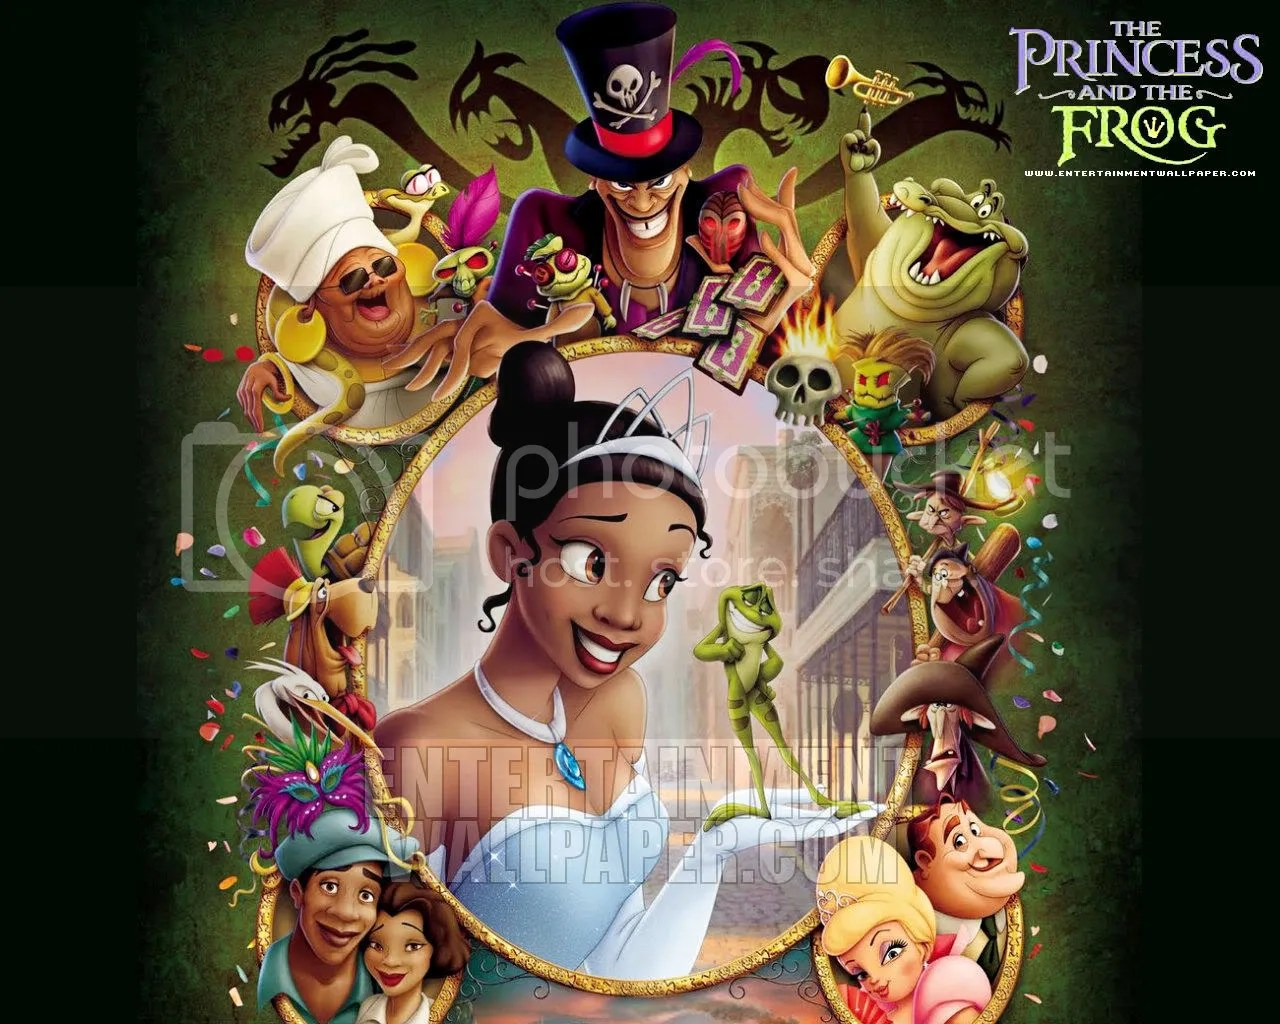 Disney's Princess and the Frog